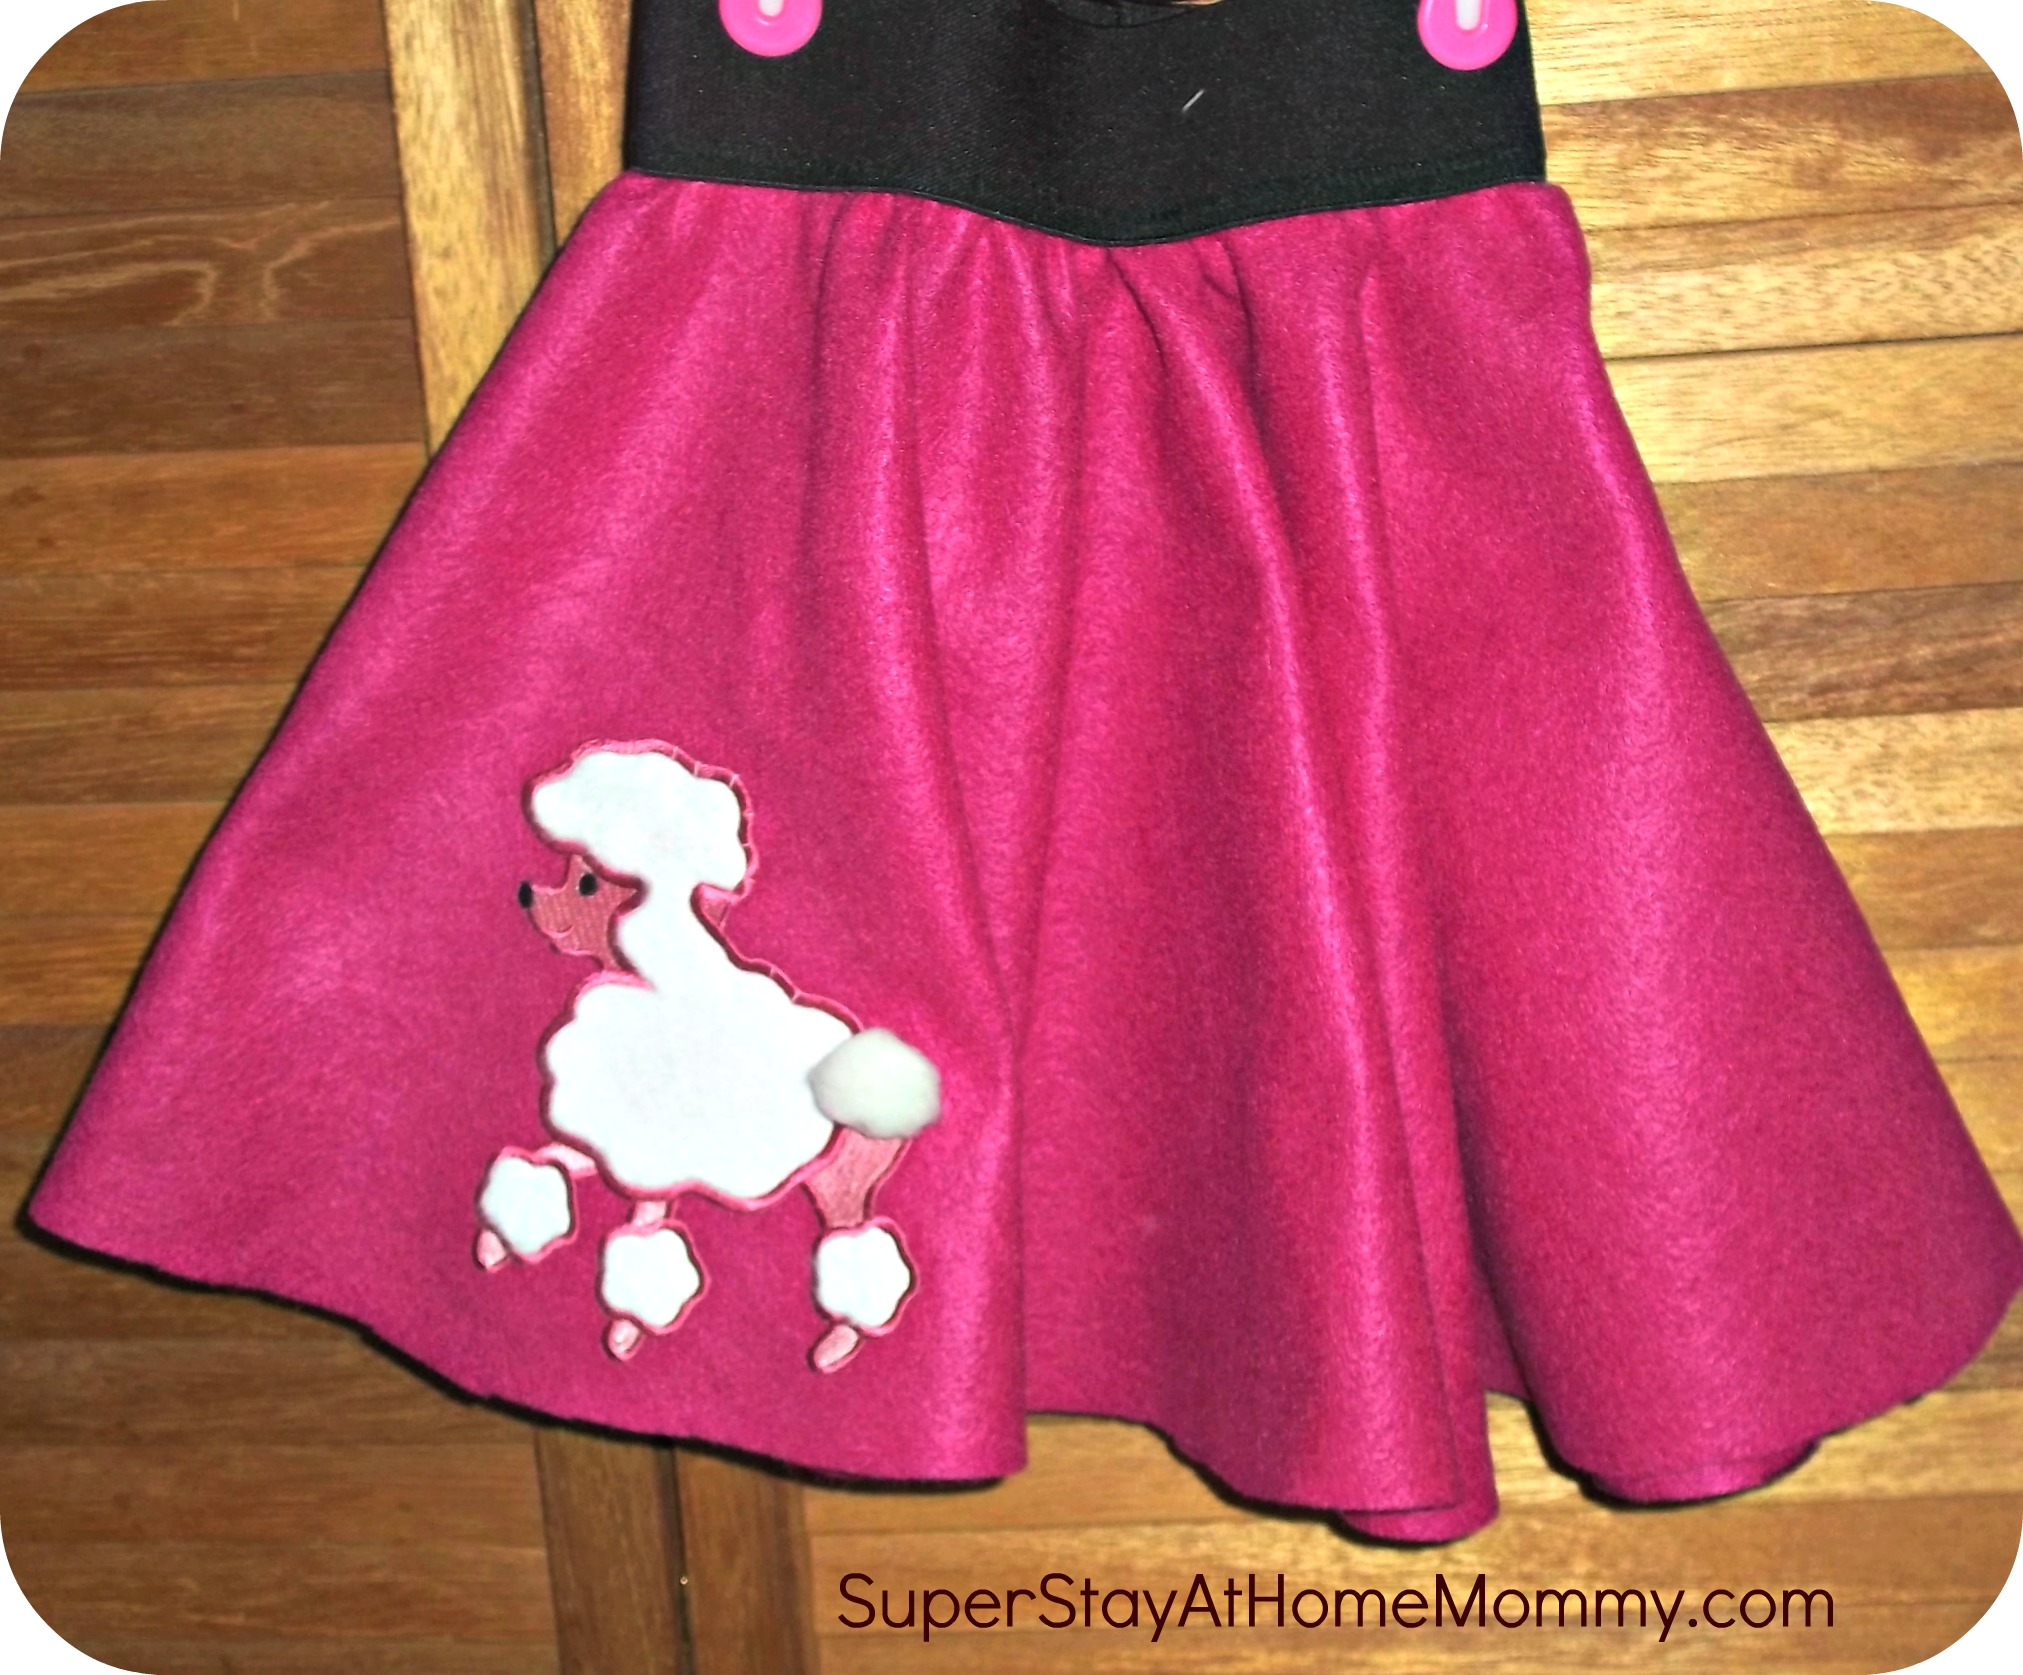 Poodle Skirt Super Stay At Home Mommy